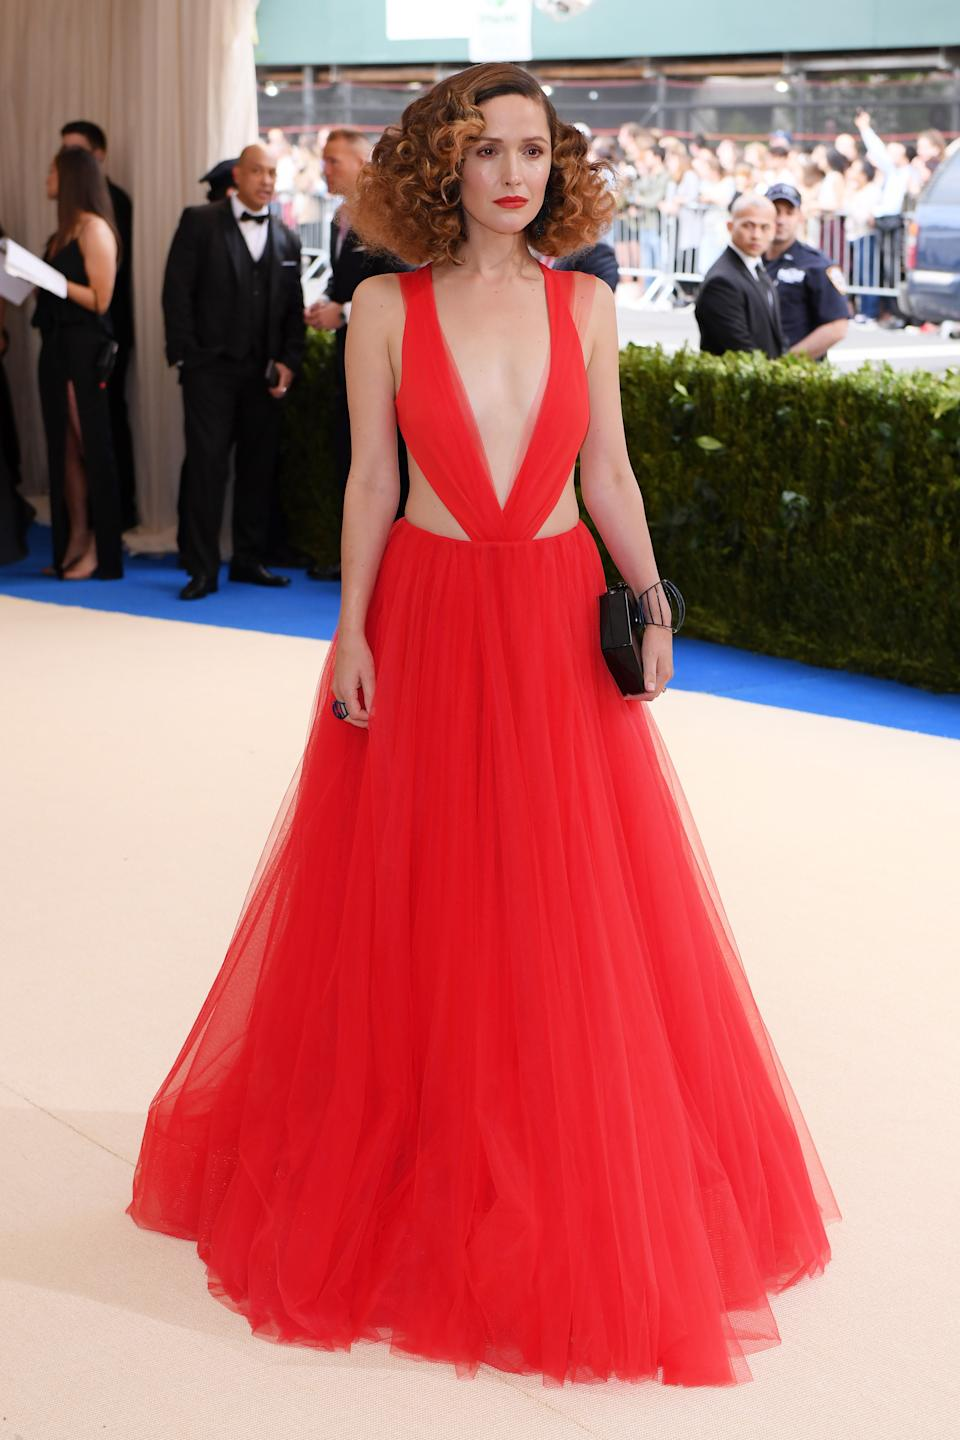 """<h1 class=""""title"""">Rose Byrne in Ralph Lauren and with Dauphin jewelry</h1><cite class=""""credit"""">Photo: REX/Shutterstock</cite>"""